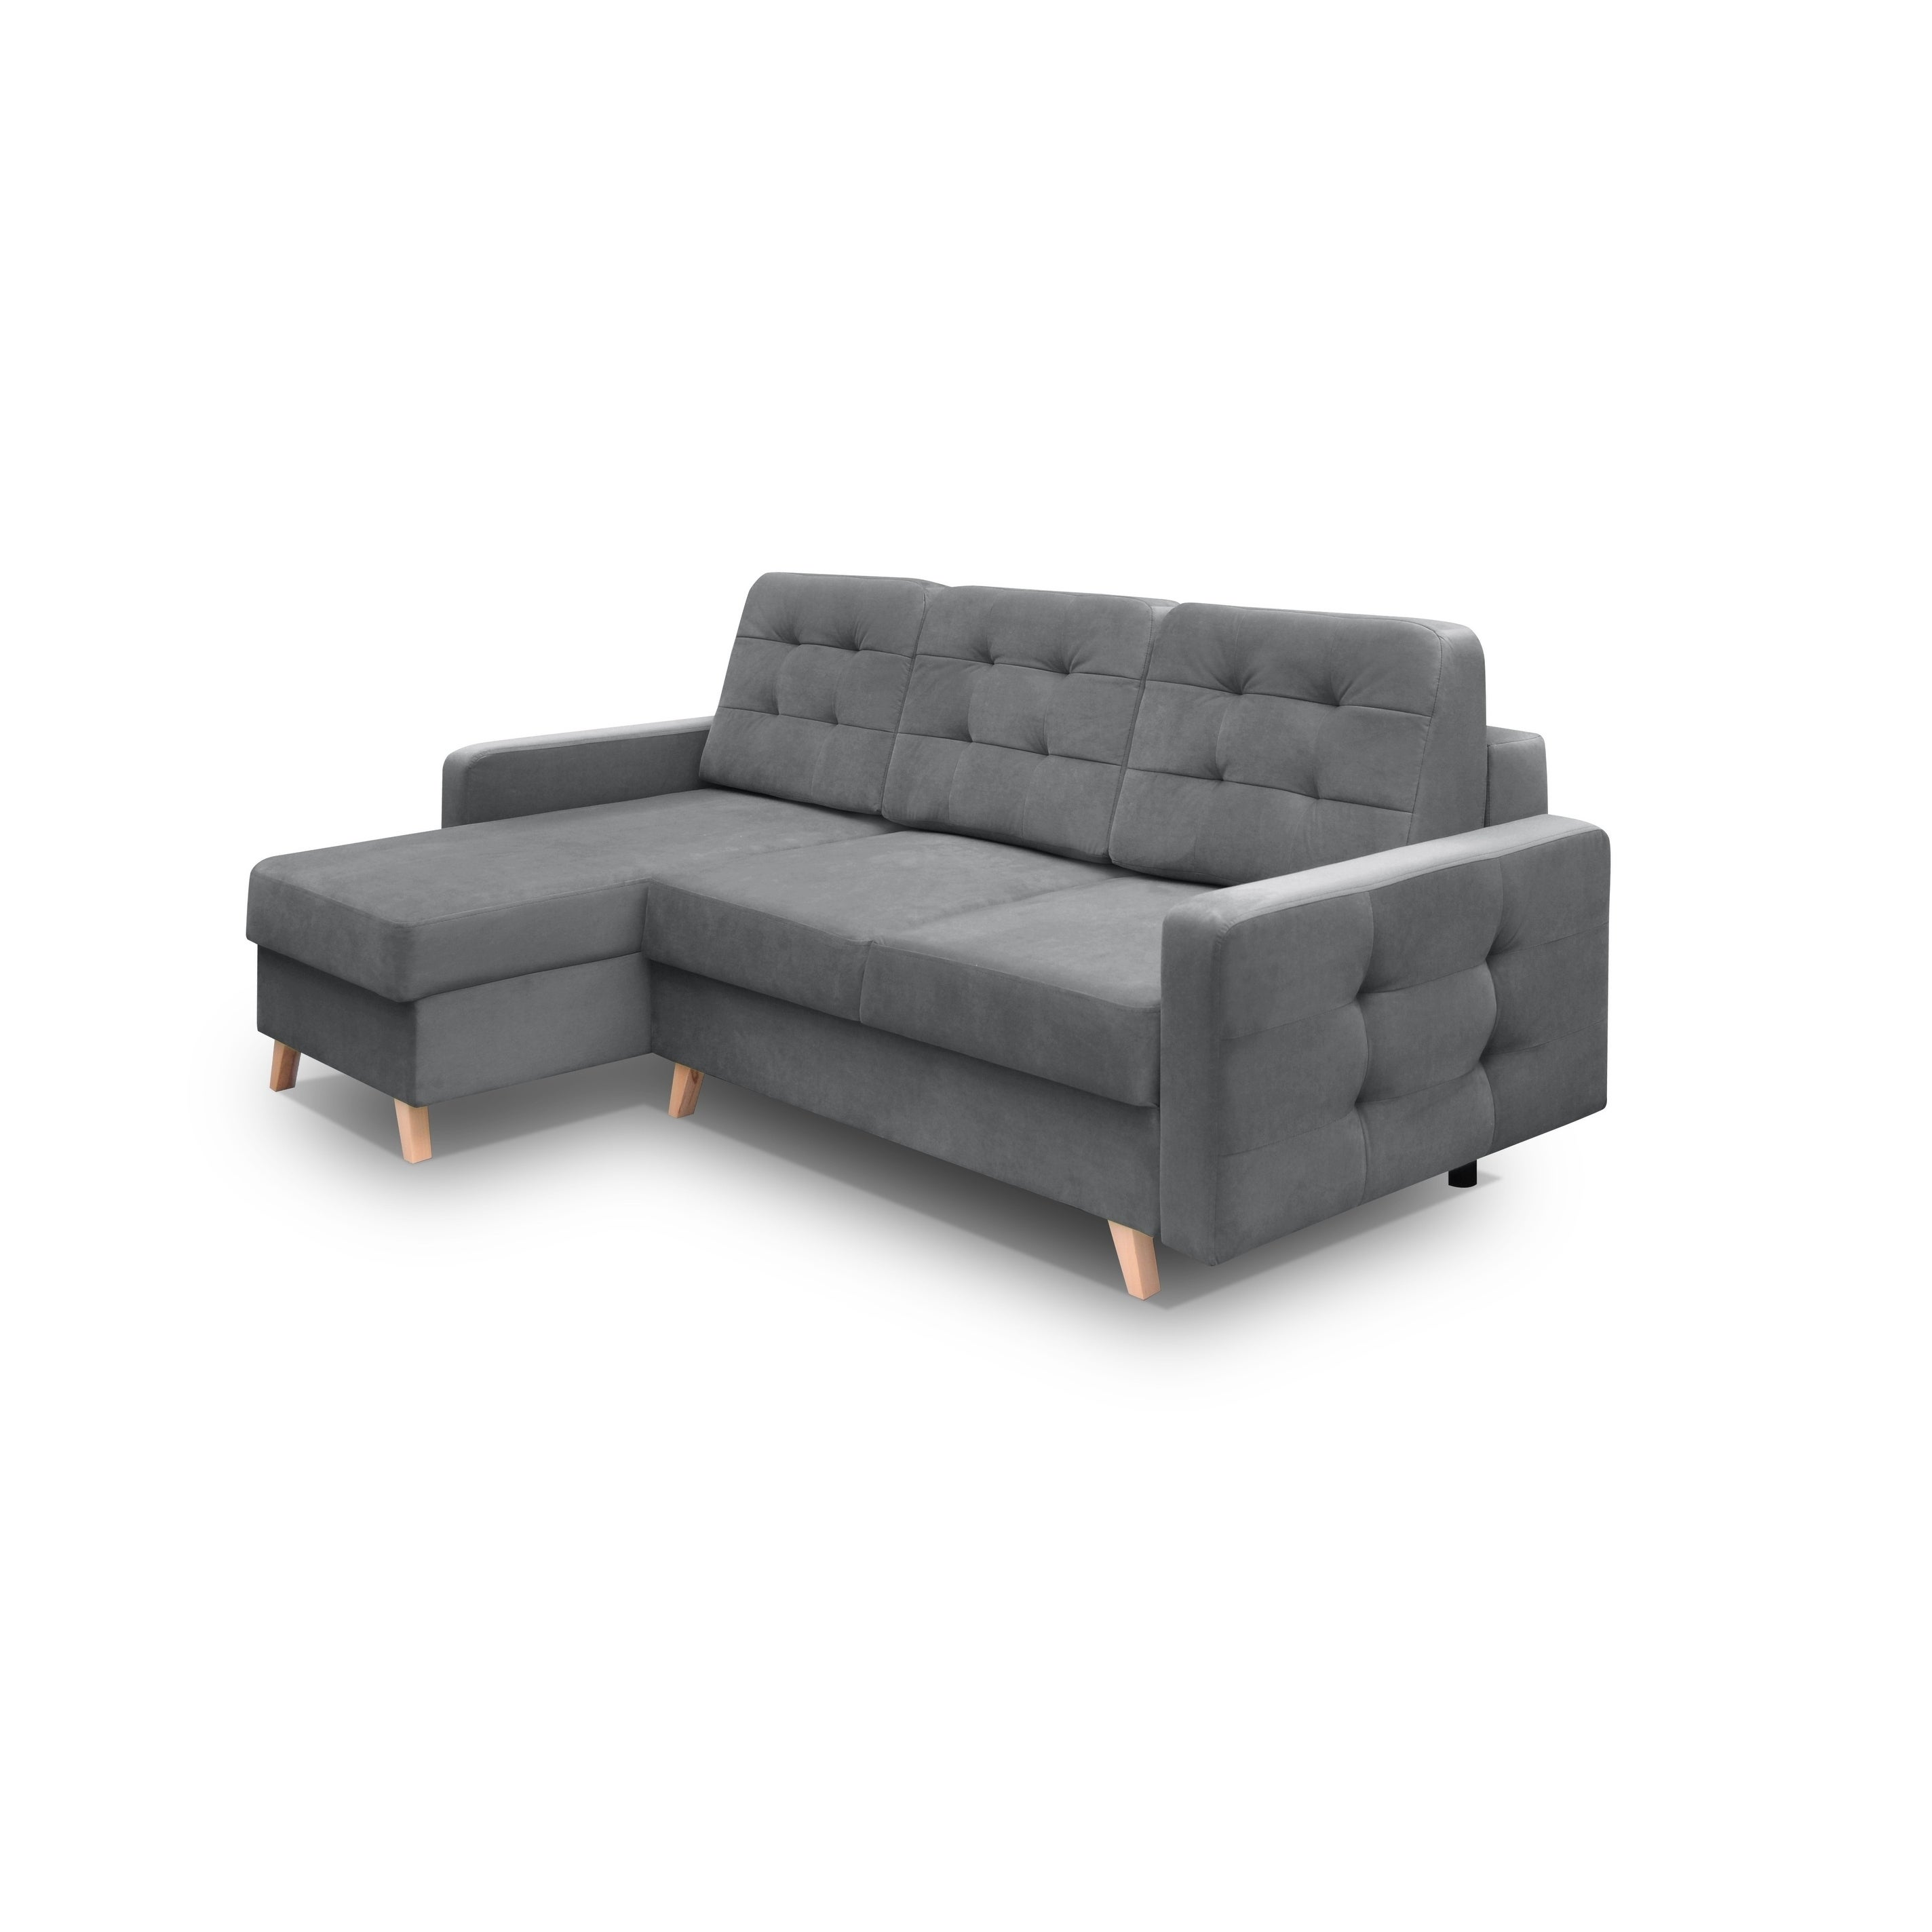 Vegas Futon Sectional Sofa Bed Queen Sleeper With Storage On Free Shipping Today 23558765